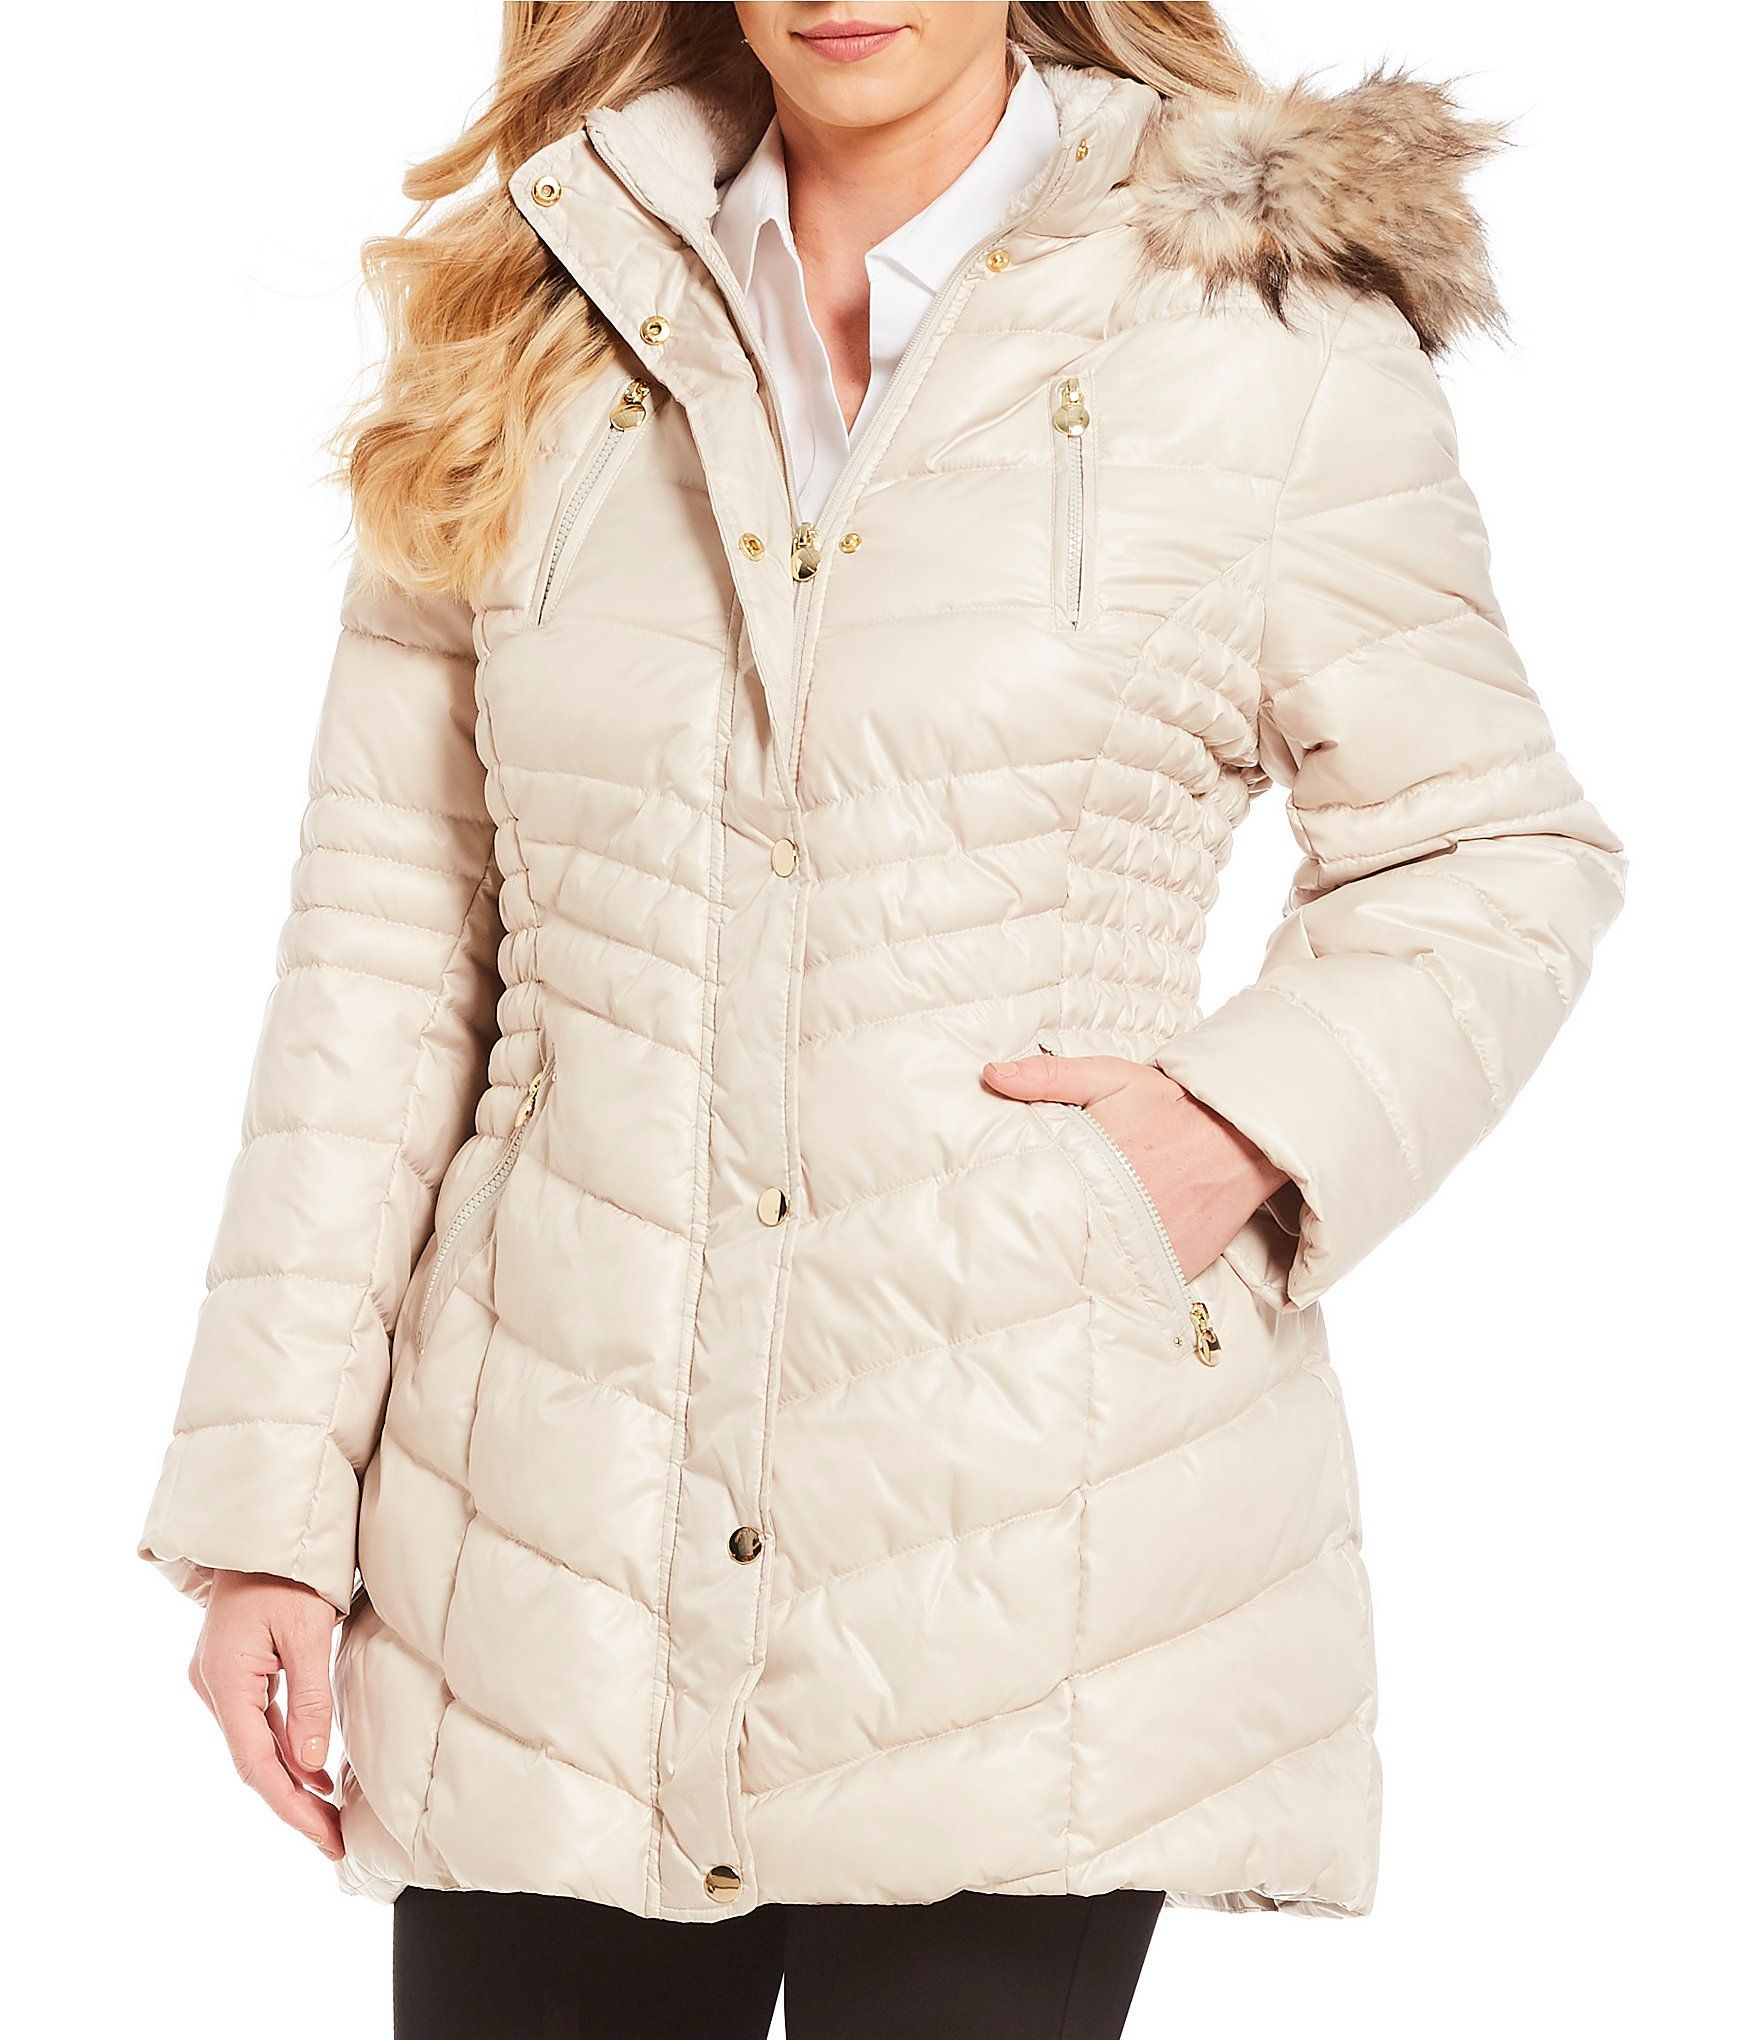 faafd93845d Shop for Preston   York Plus Size Snap Front Faux Fur Hood Puffer Coat at  Dillards.com. Visit Dillards.com to find clothing